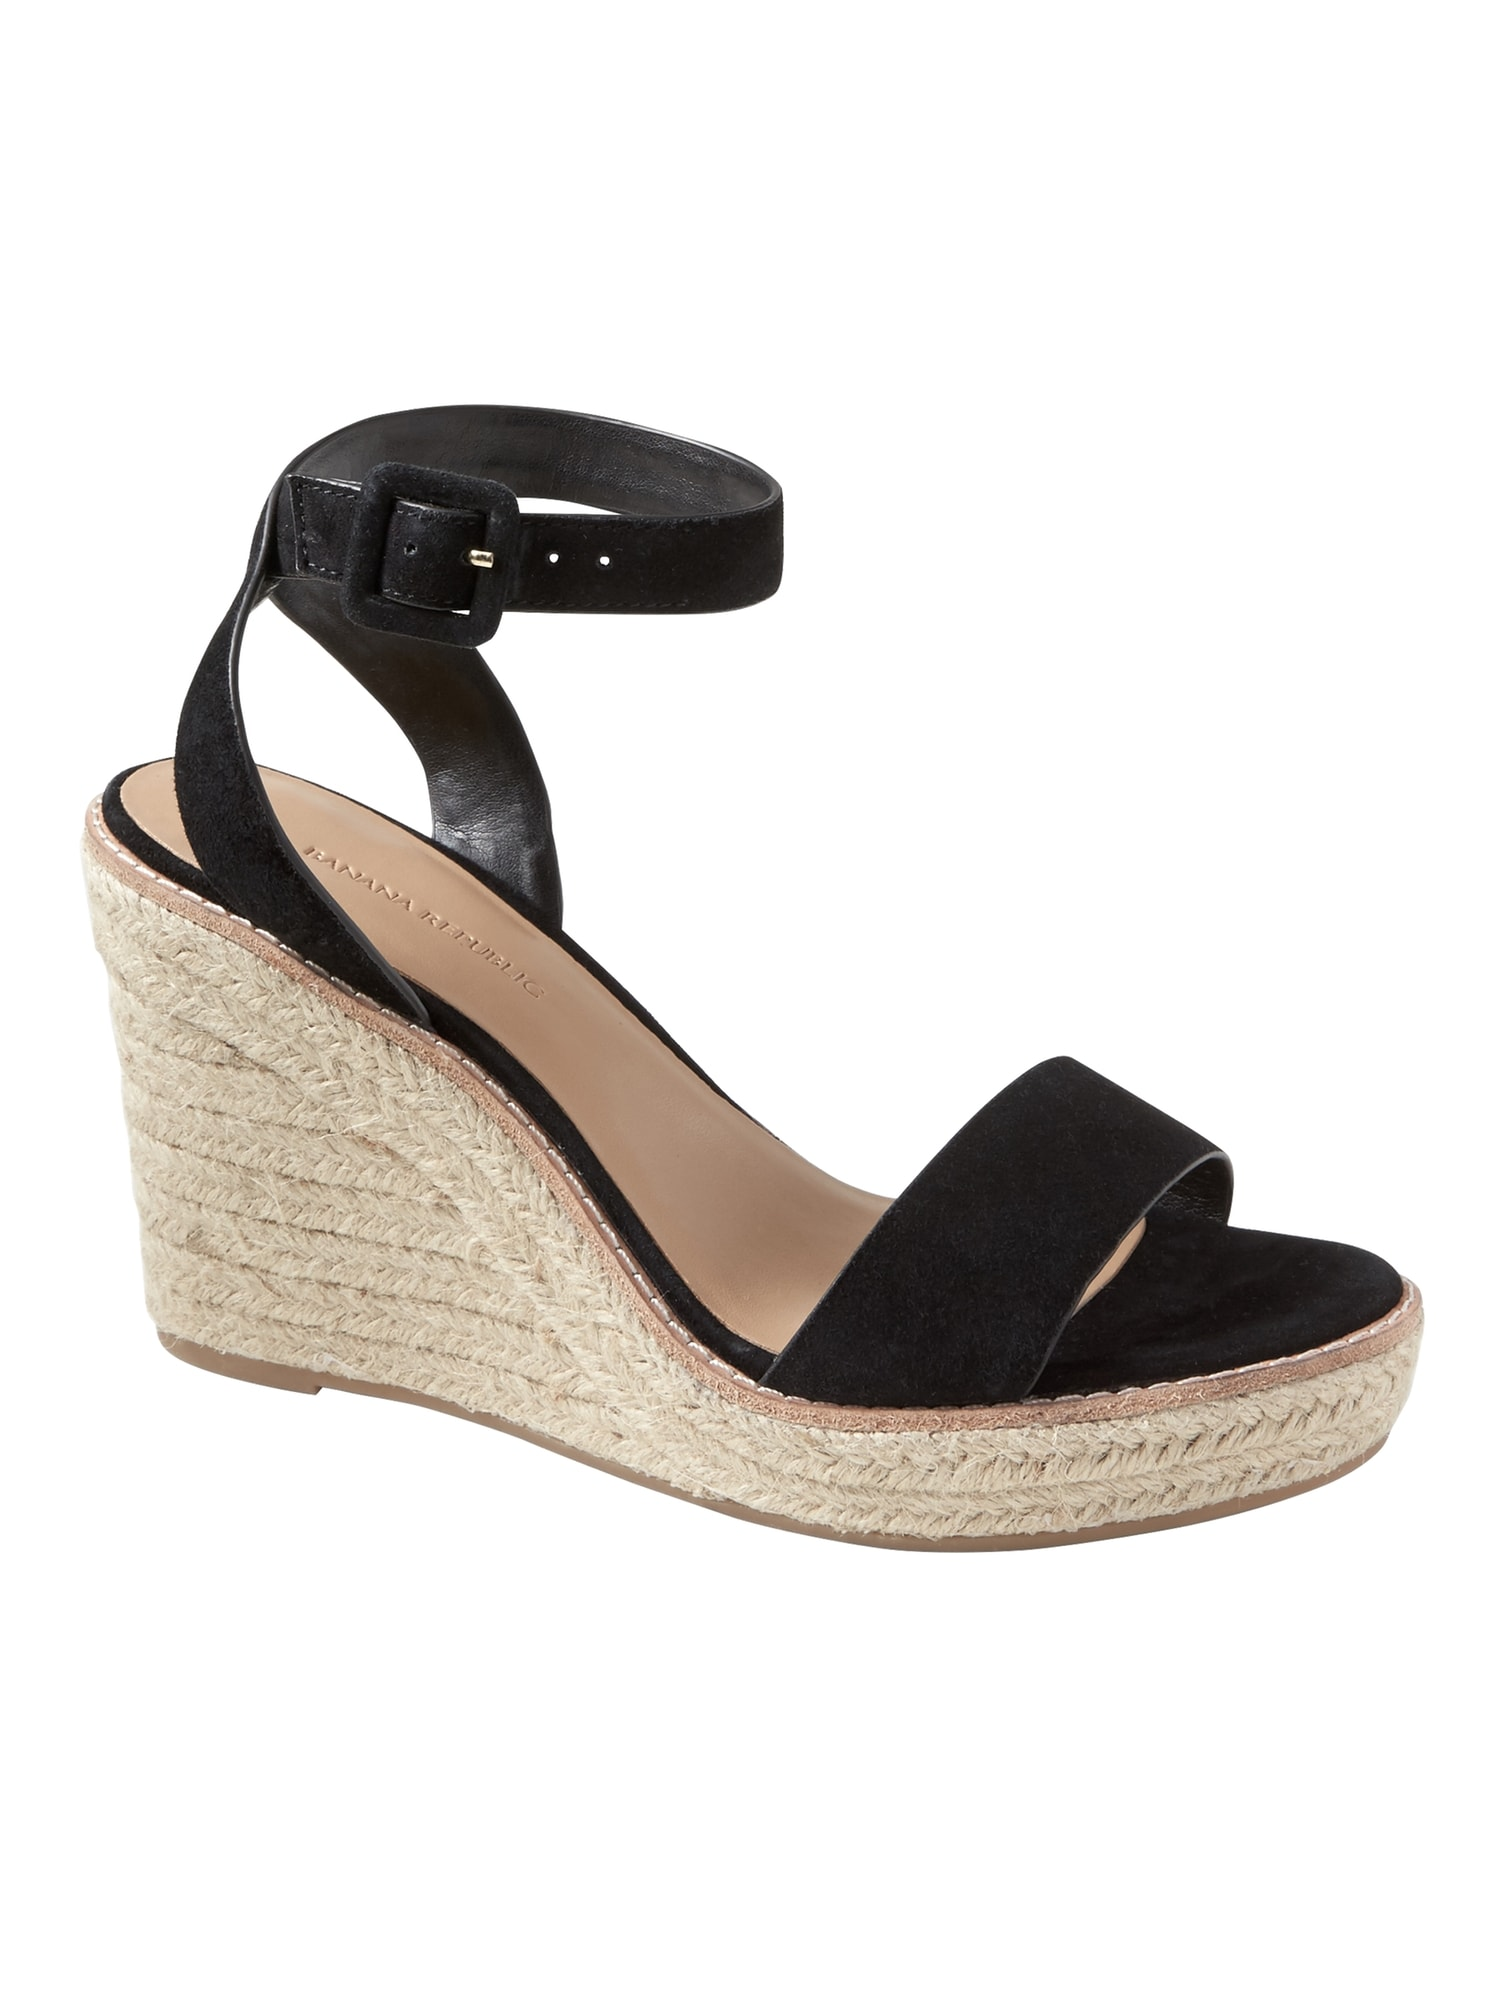 51c58950a326 Espadrille Wedge Sandal